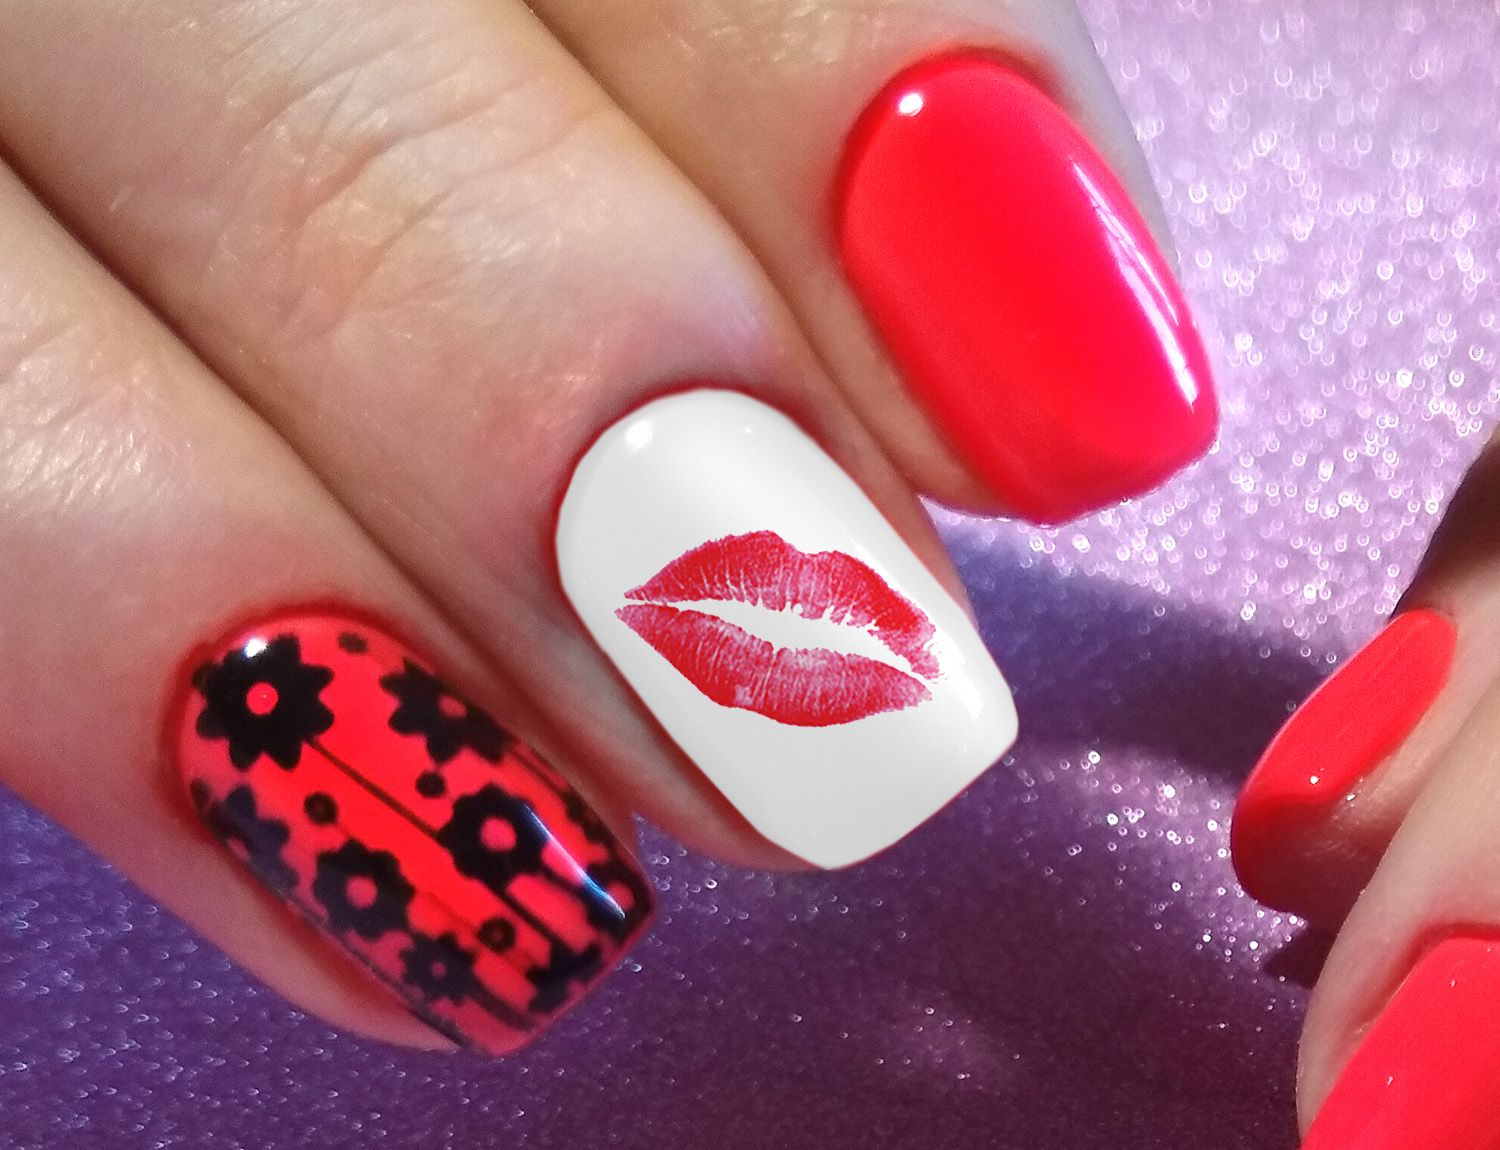 Lips Kiss Nail Art Decals | Nail decals, Kiss nails and Manicure